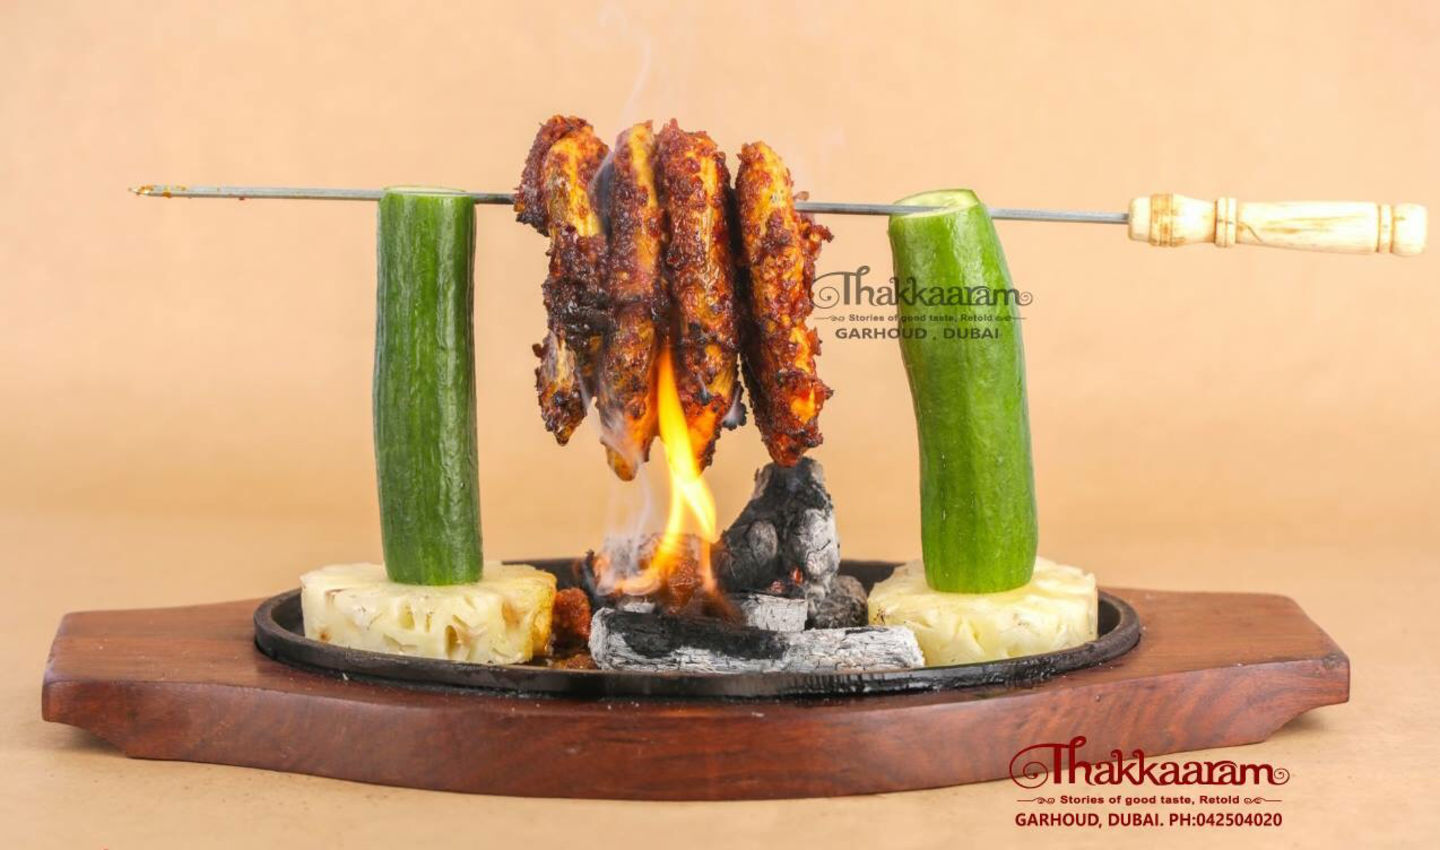 HiDubai-business-thakkaaram-restaurant-food-beverage-restaurants-bars-al-garhoud-dubai-2